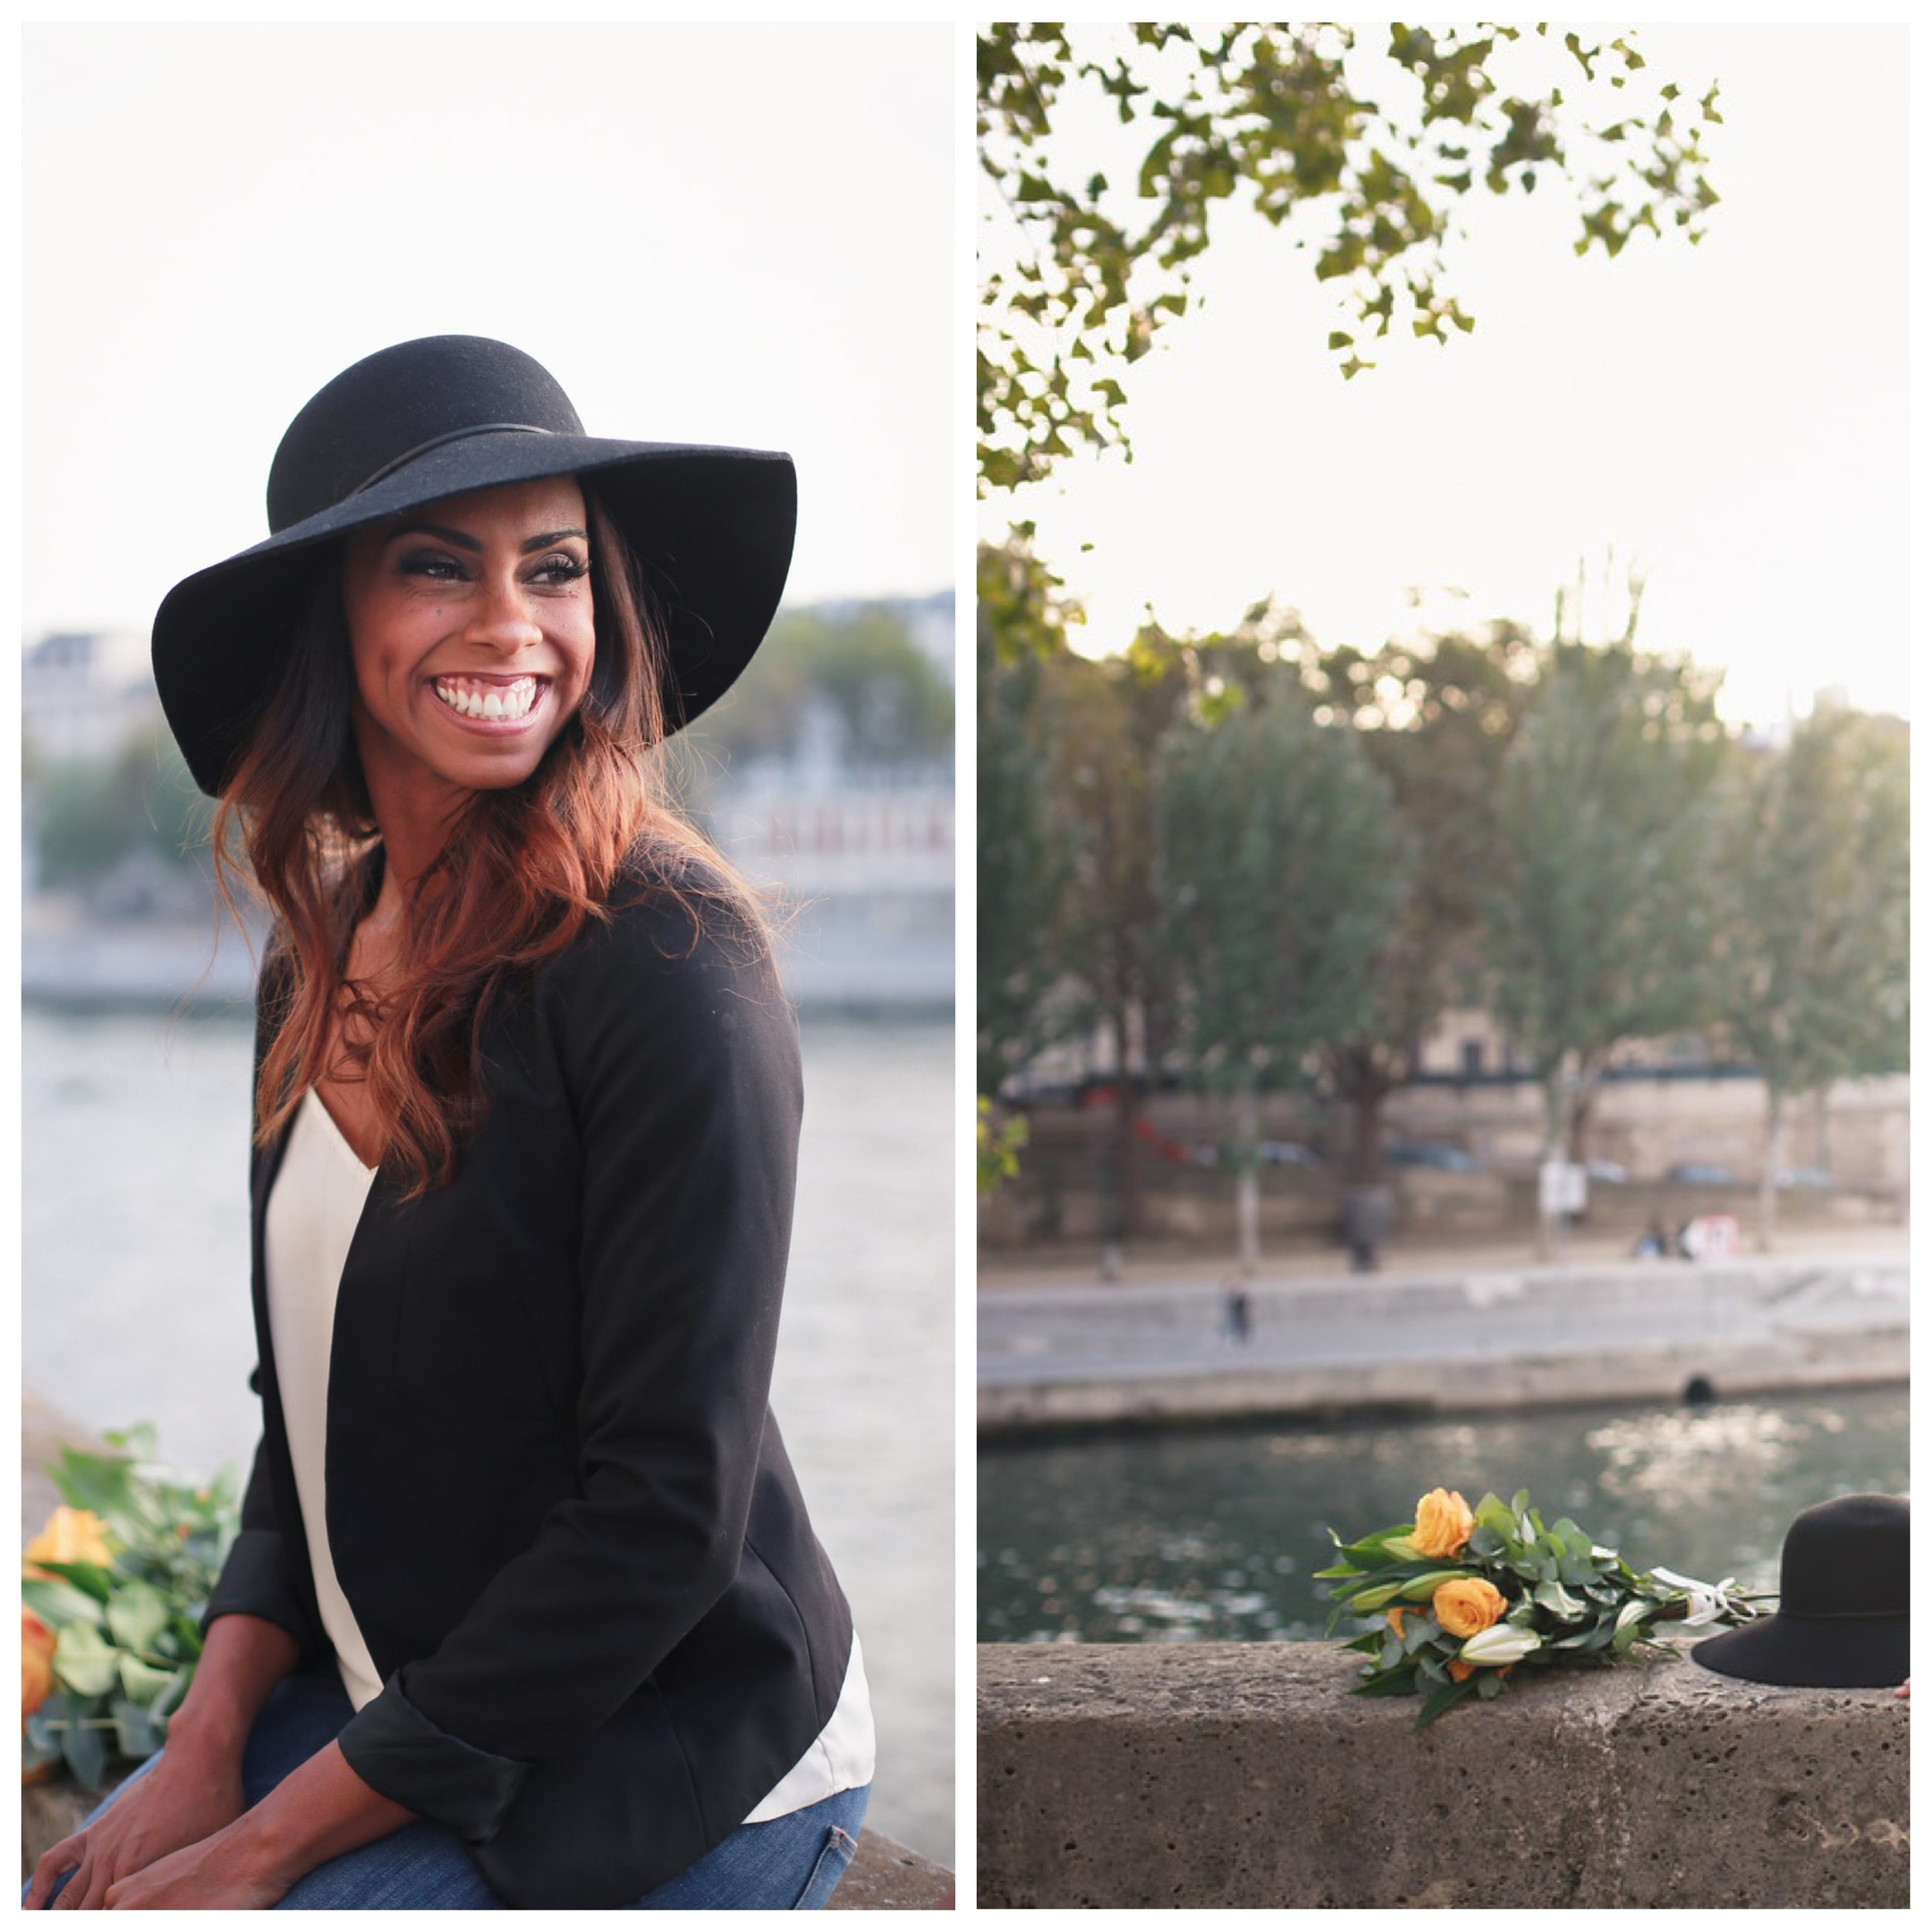 Photo shoot with Flytographer. Woman sitting along the seine. Flowers